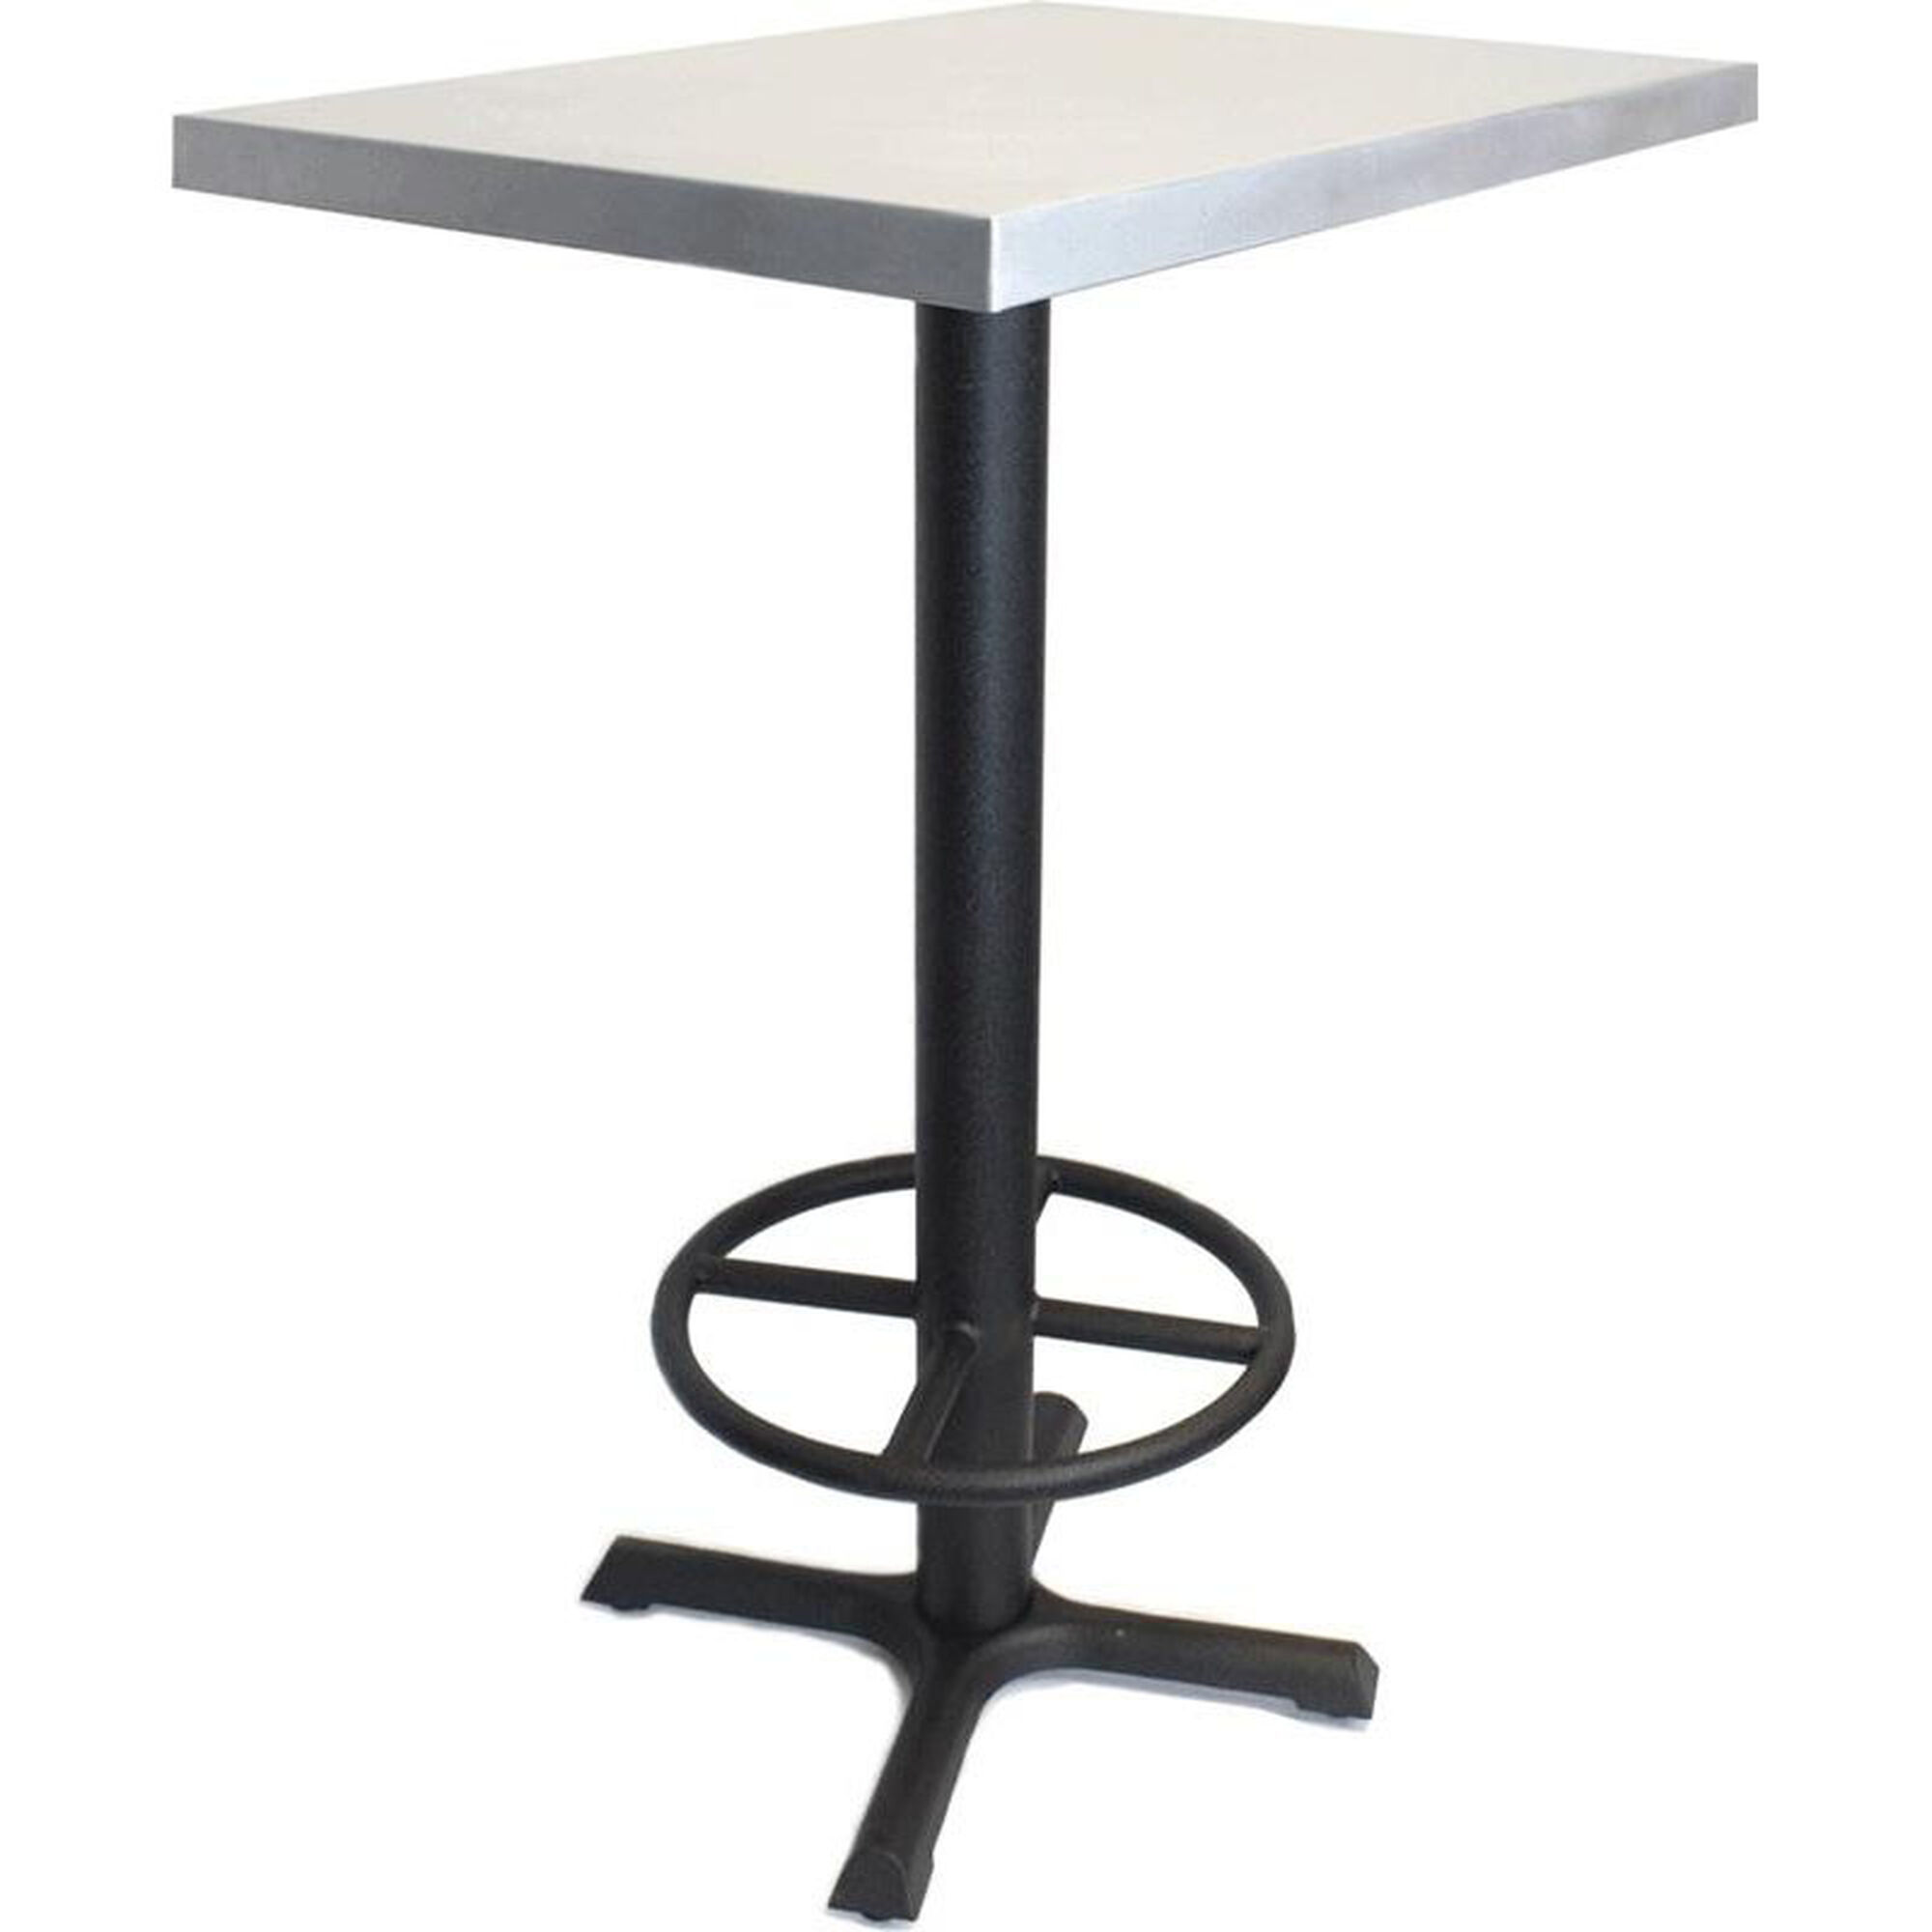 Jackson Rectangular Table With Metal Base: Mio Metals Rectangular Zinc Table With Bar Height Black